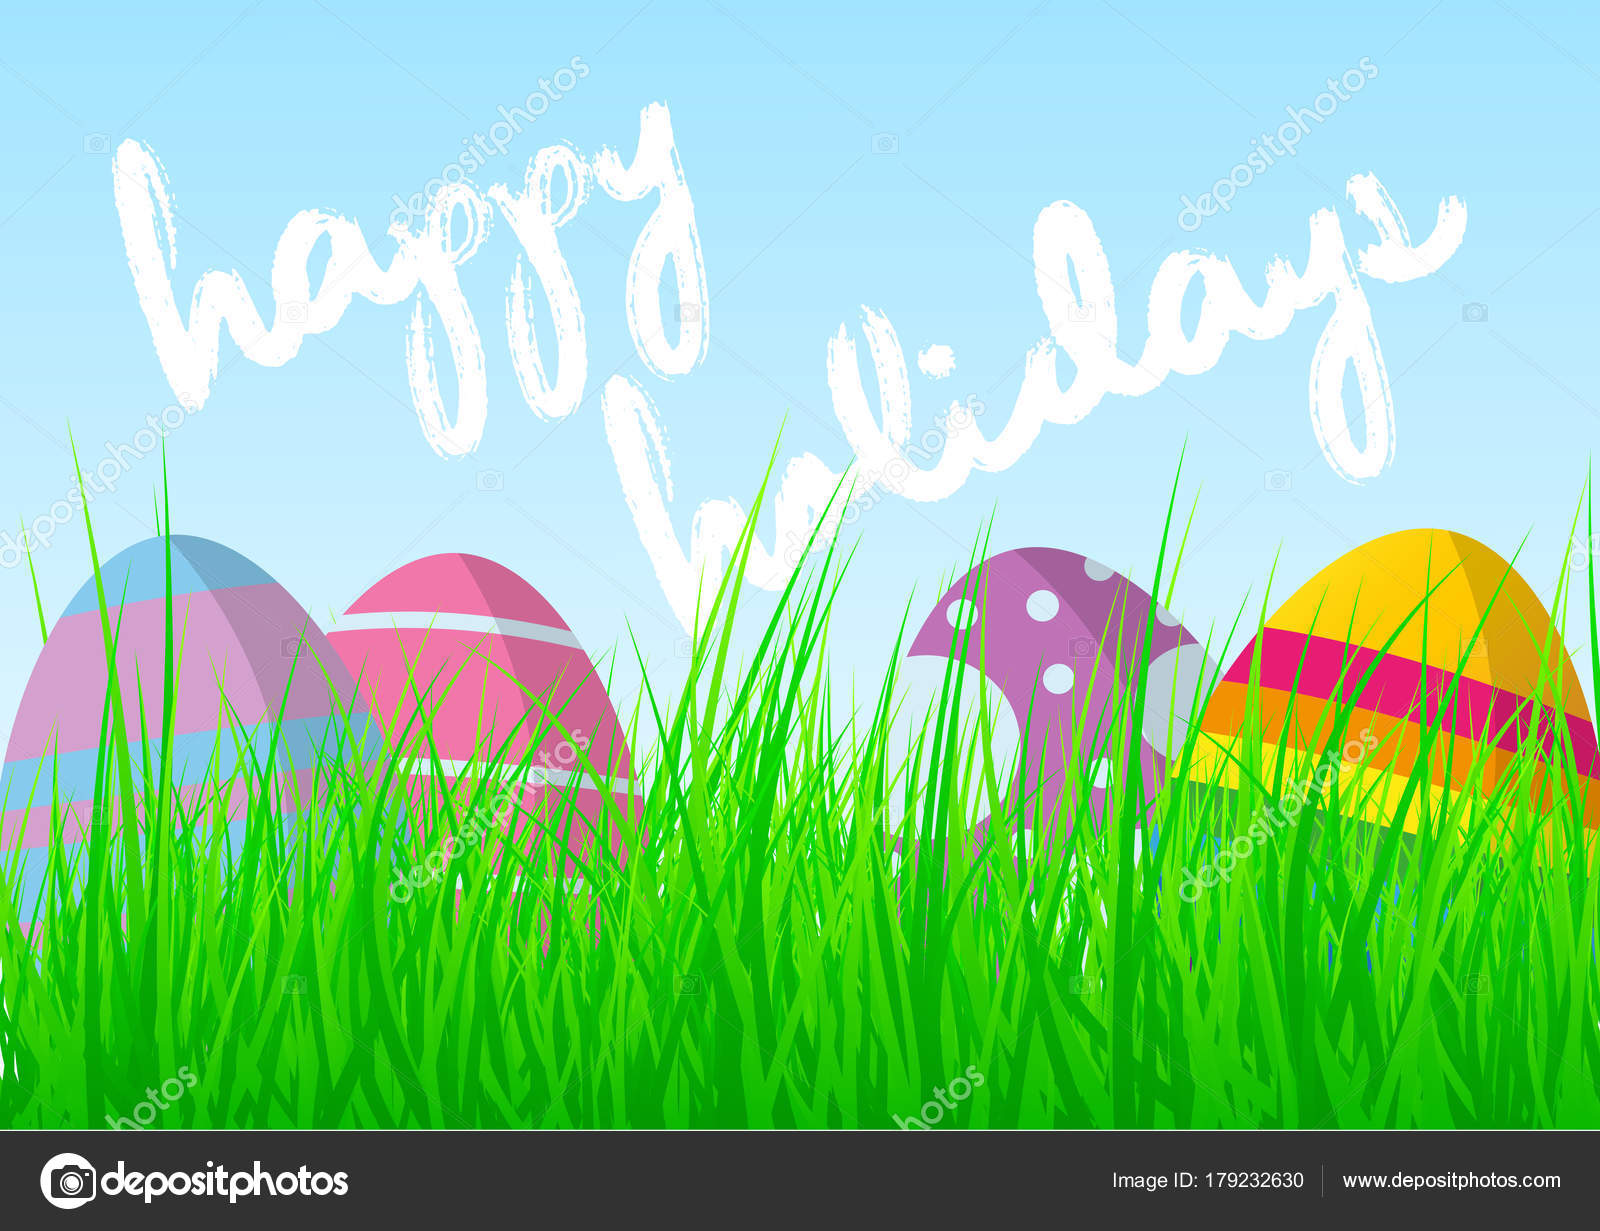 Colorful easter eggs fresh green grass blue sky words happy stock colorful easter eggs in fresh green grass against blue sky with words happy easter holidays greeting card vector by chris77ho m4hsunfo